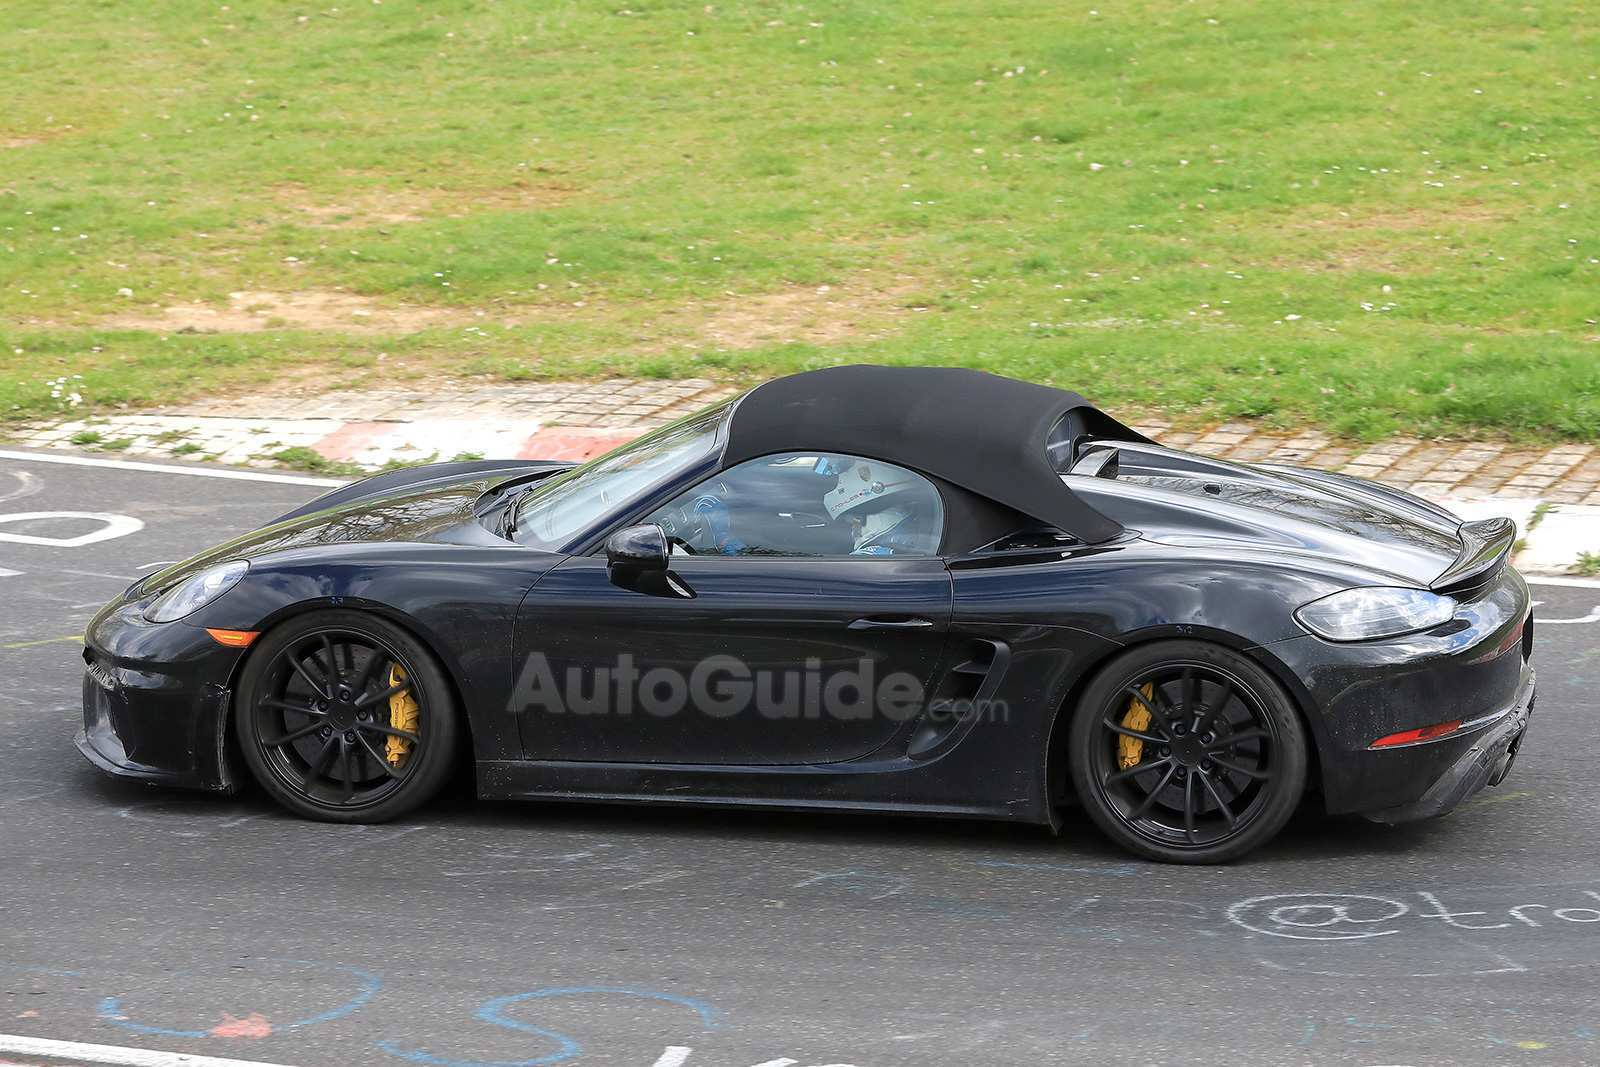 70 All New 2019 Porsche Boxster Spyder Images with 2019 Porsche Boxster Spyder